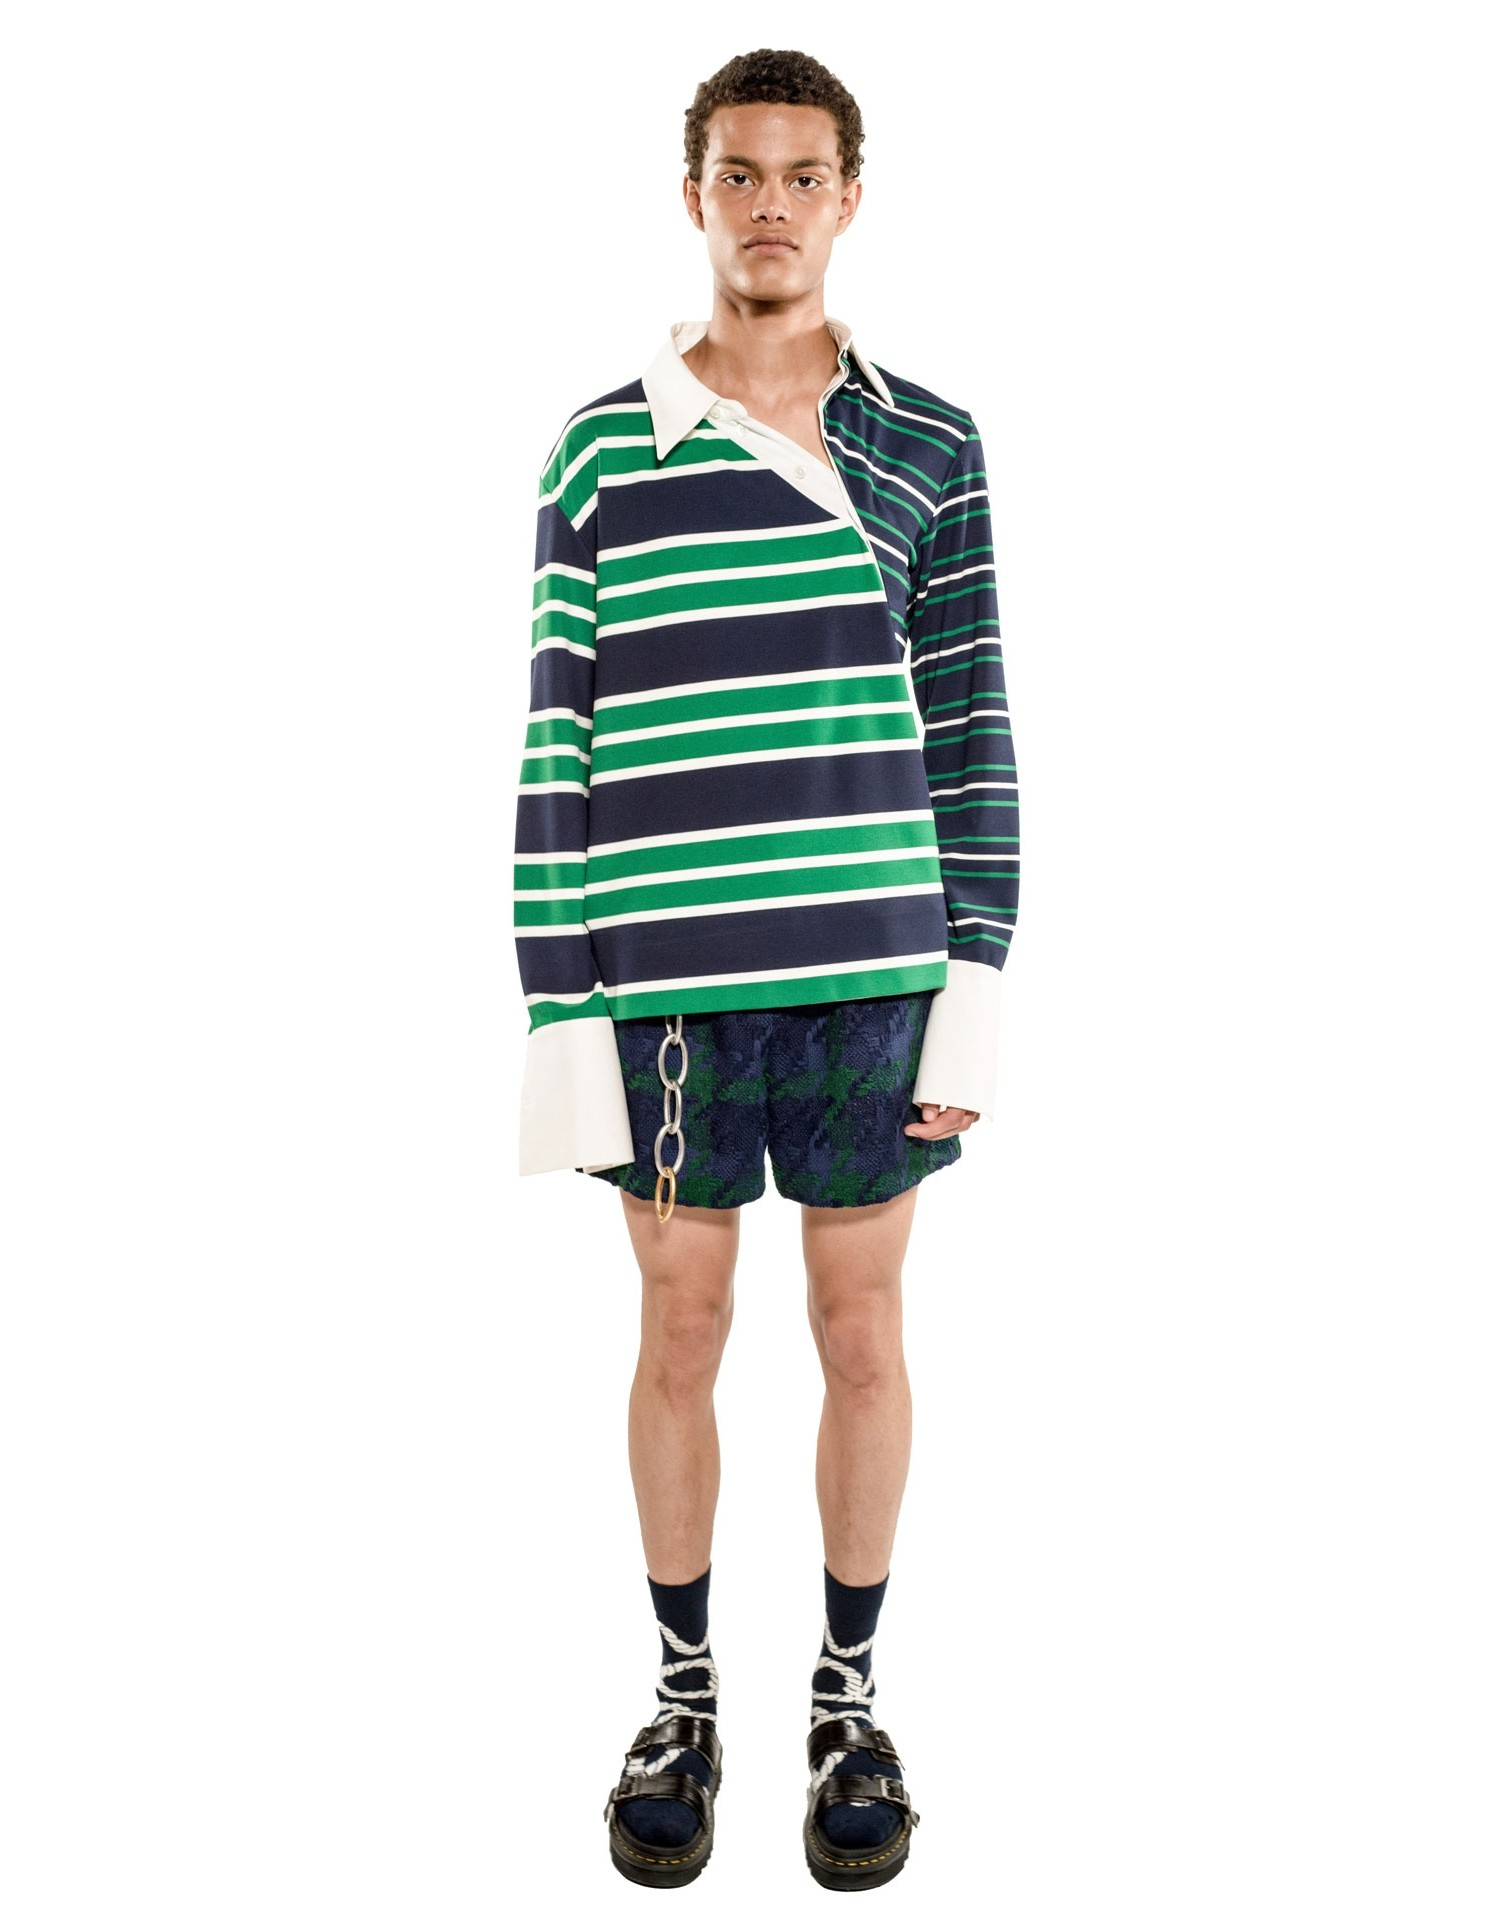 Monse Unisex Striped Twisted Rugby Top on Male Model